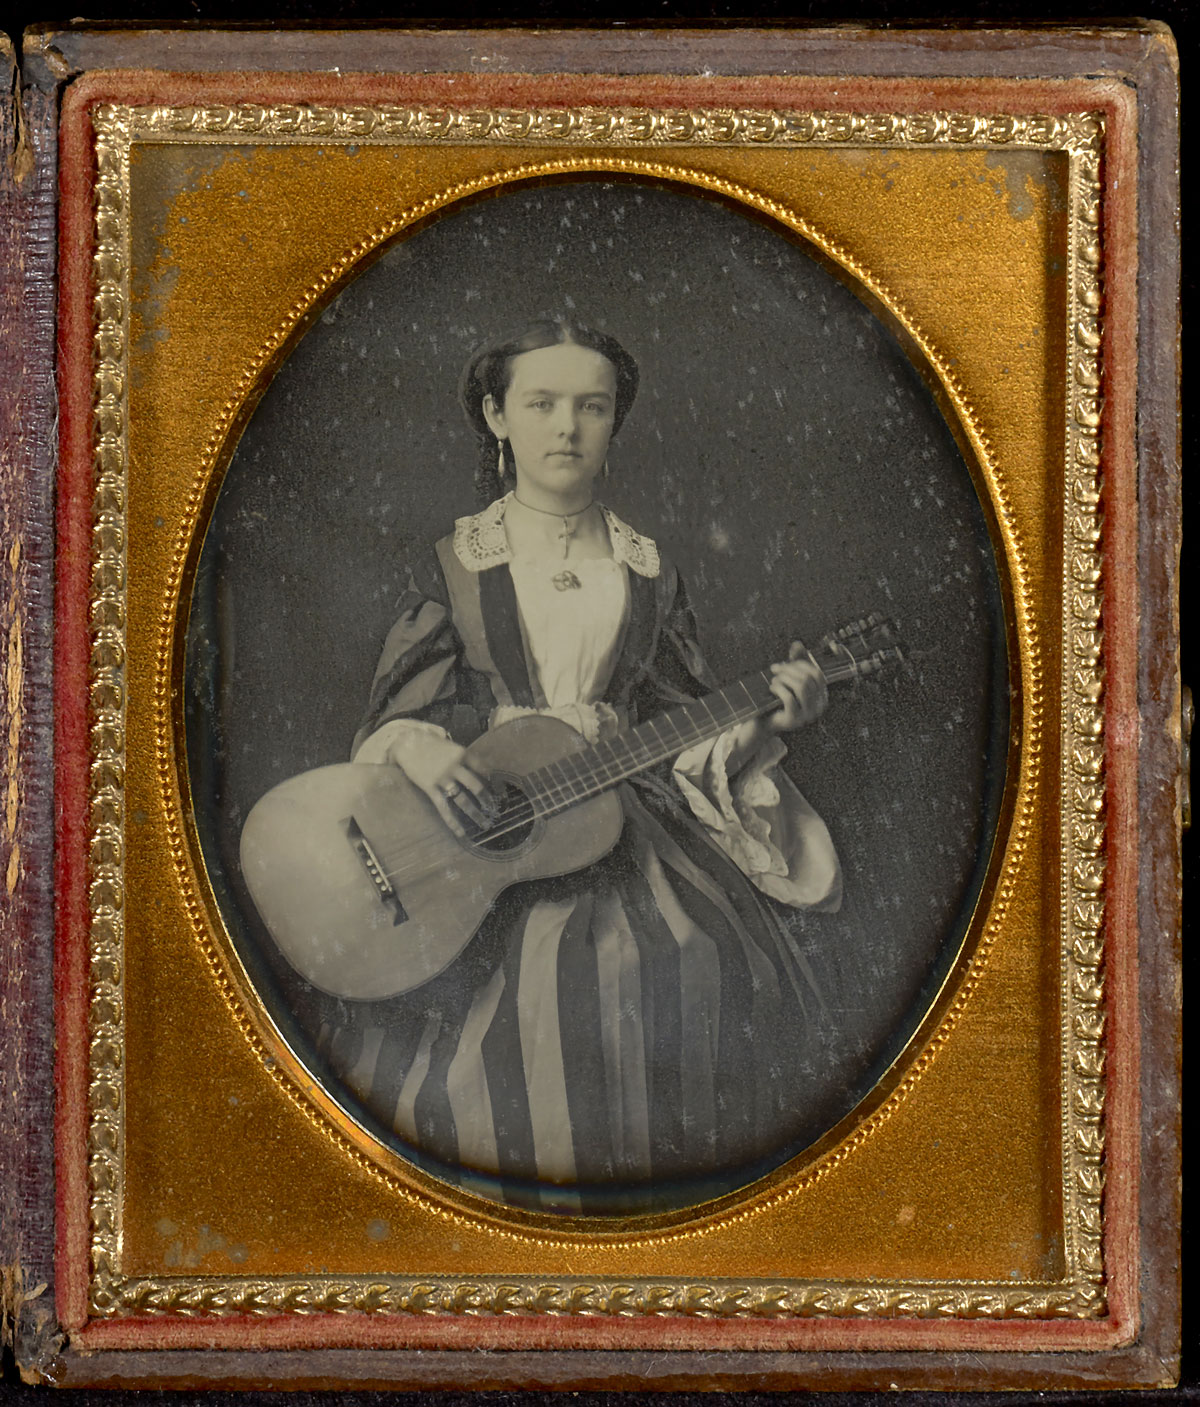 Fotó: Unknown maker (American)<br />Portrait of Young Girl with a Guitar<br />c. 1850<br />Daguerreotype<br />1/6 plate<br />Open: 9.2 x 15.2 cm (3 5/8 x 6 in.)<br />Graham Nash Collection